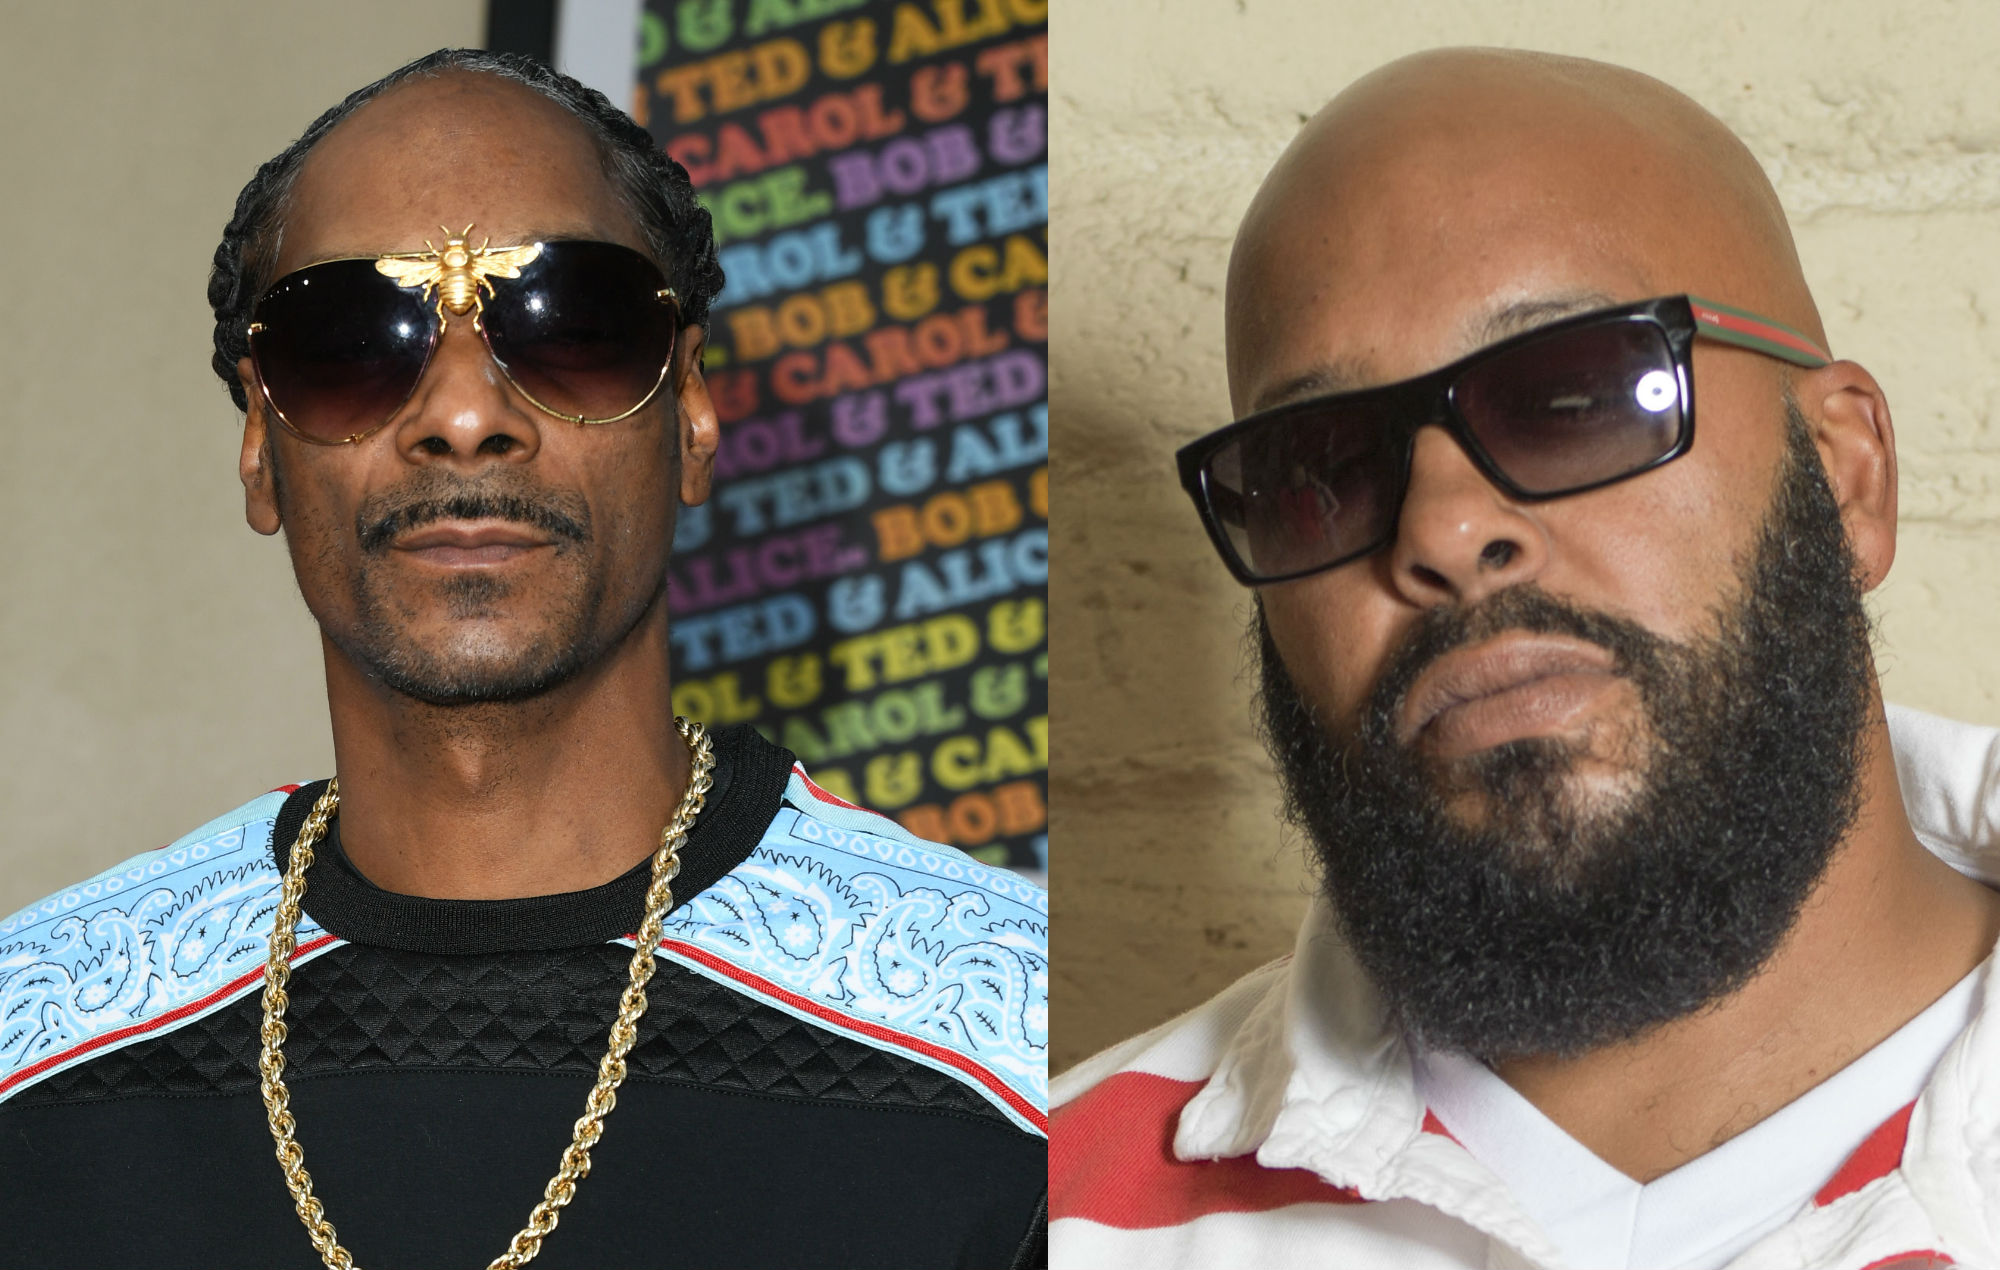 Friends again? Snoop Dogg pays tribute to Suge Knight on new song